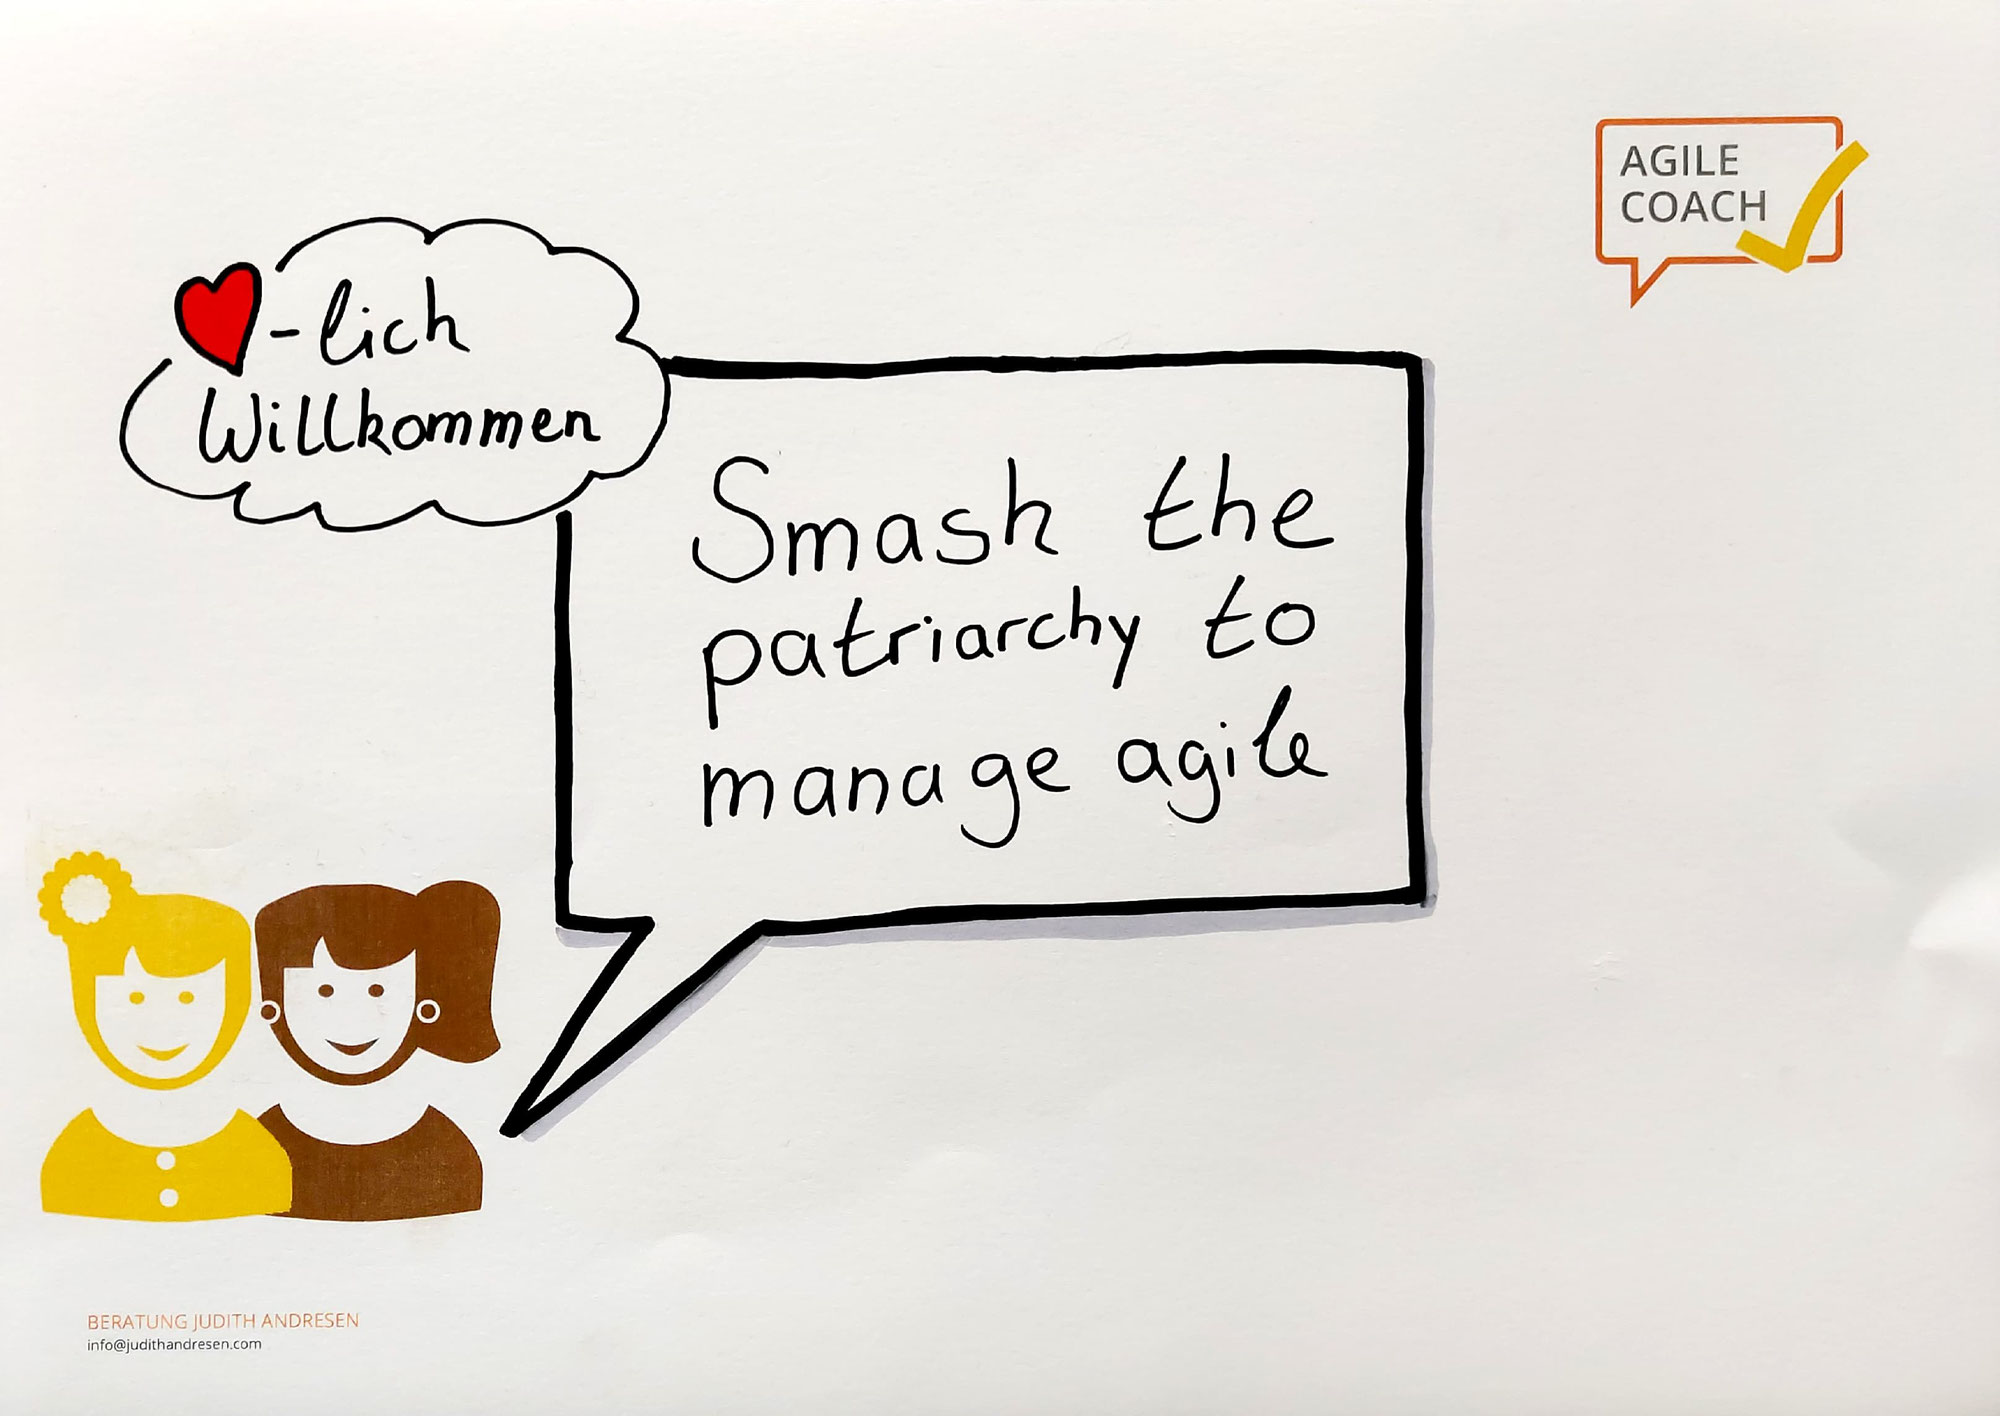 Manage Agile | Smash the patriarchy to manage agile